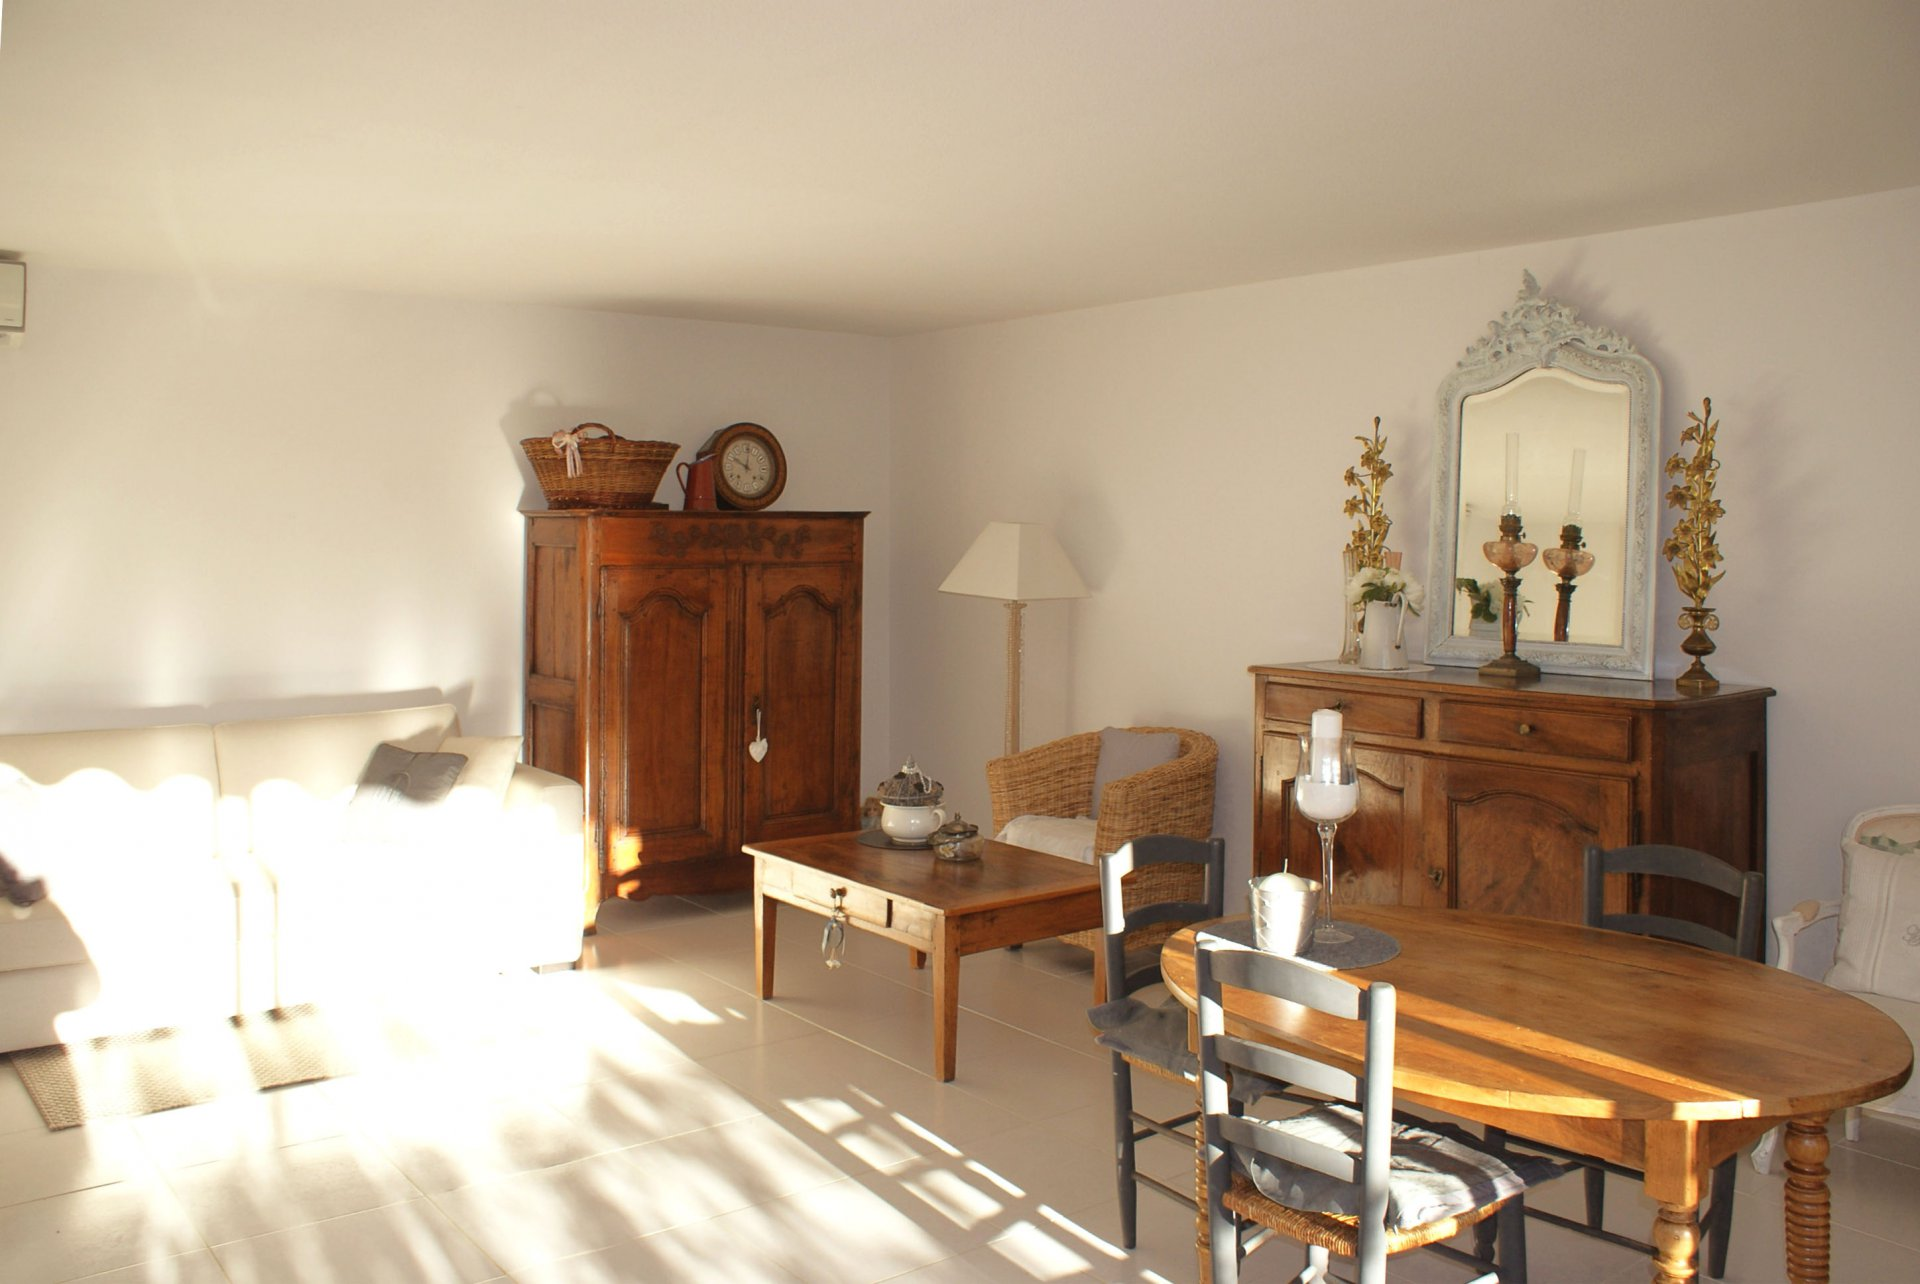 Large 2 bedrooms of 98 sqm in excellent state of condition